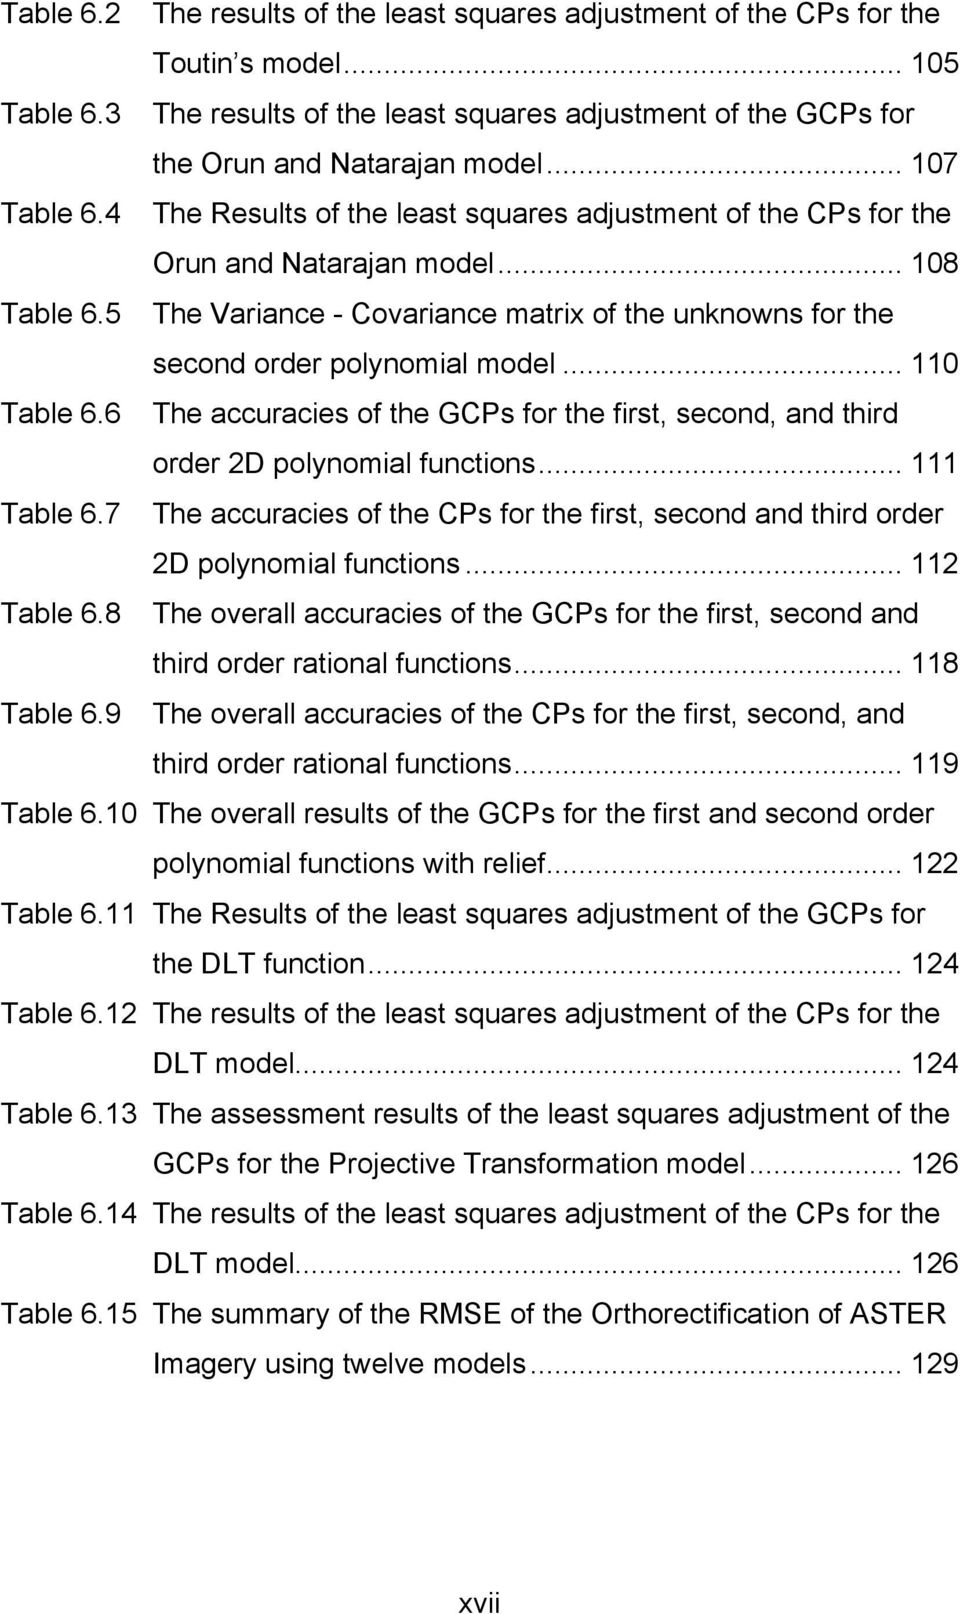 5 The Varance - Covarance matrx of the unknowns for the second order polynomal model... 110 Table 6.6 The accuraces of the GCPs for the frst, second, and thrd order D polynomal functons... 111 Table 6.